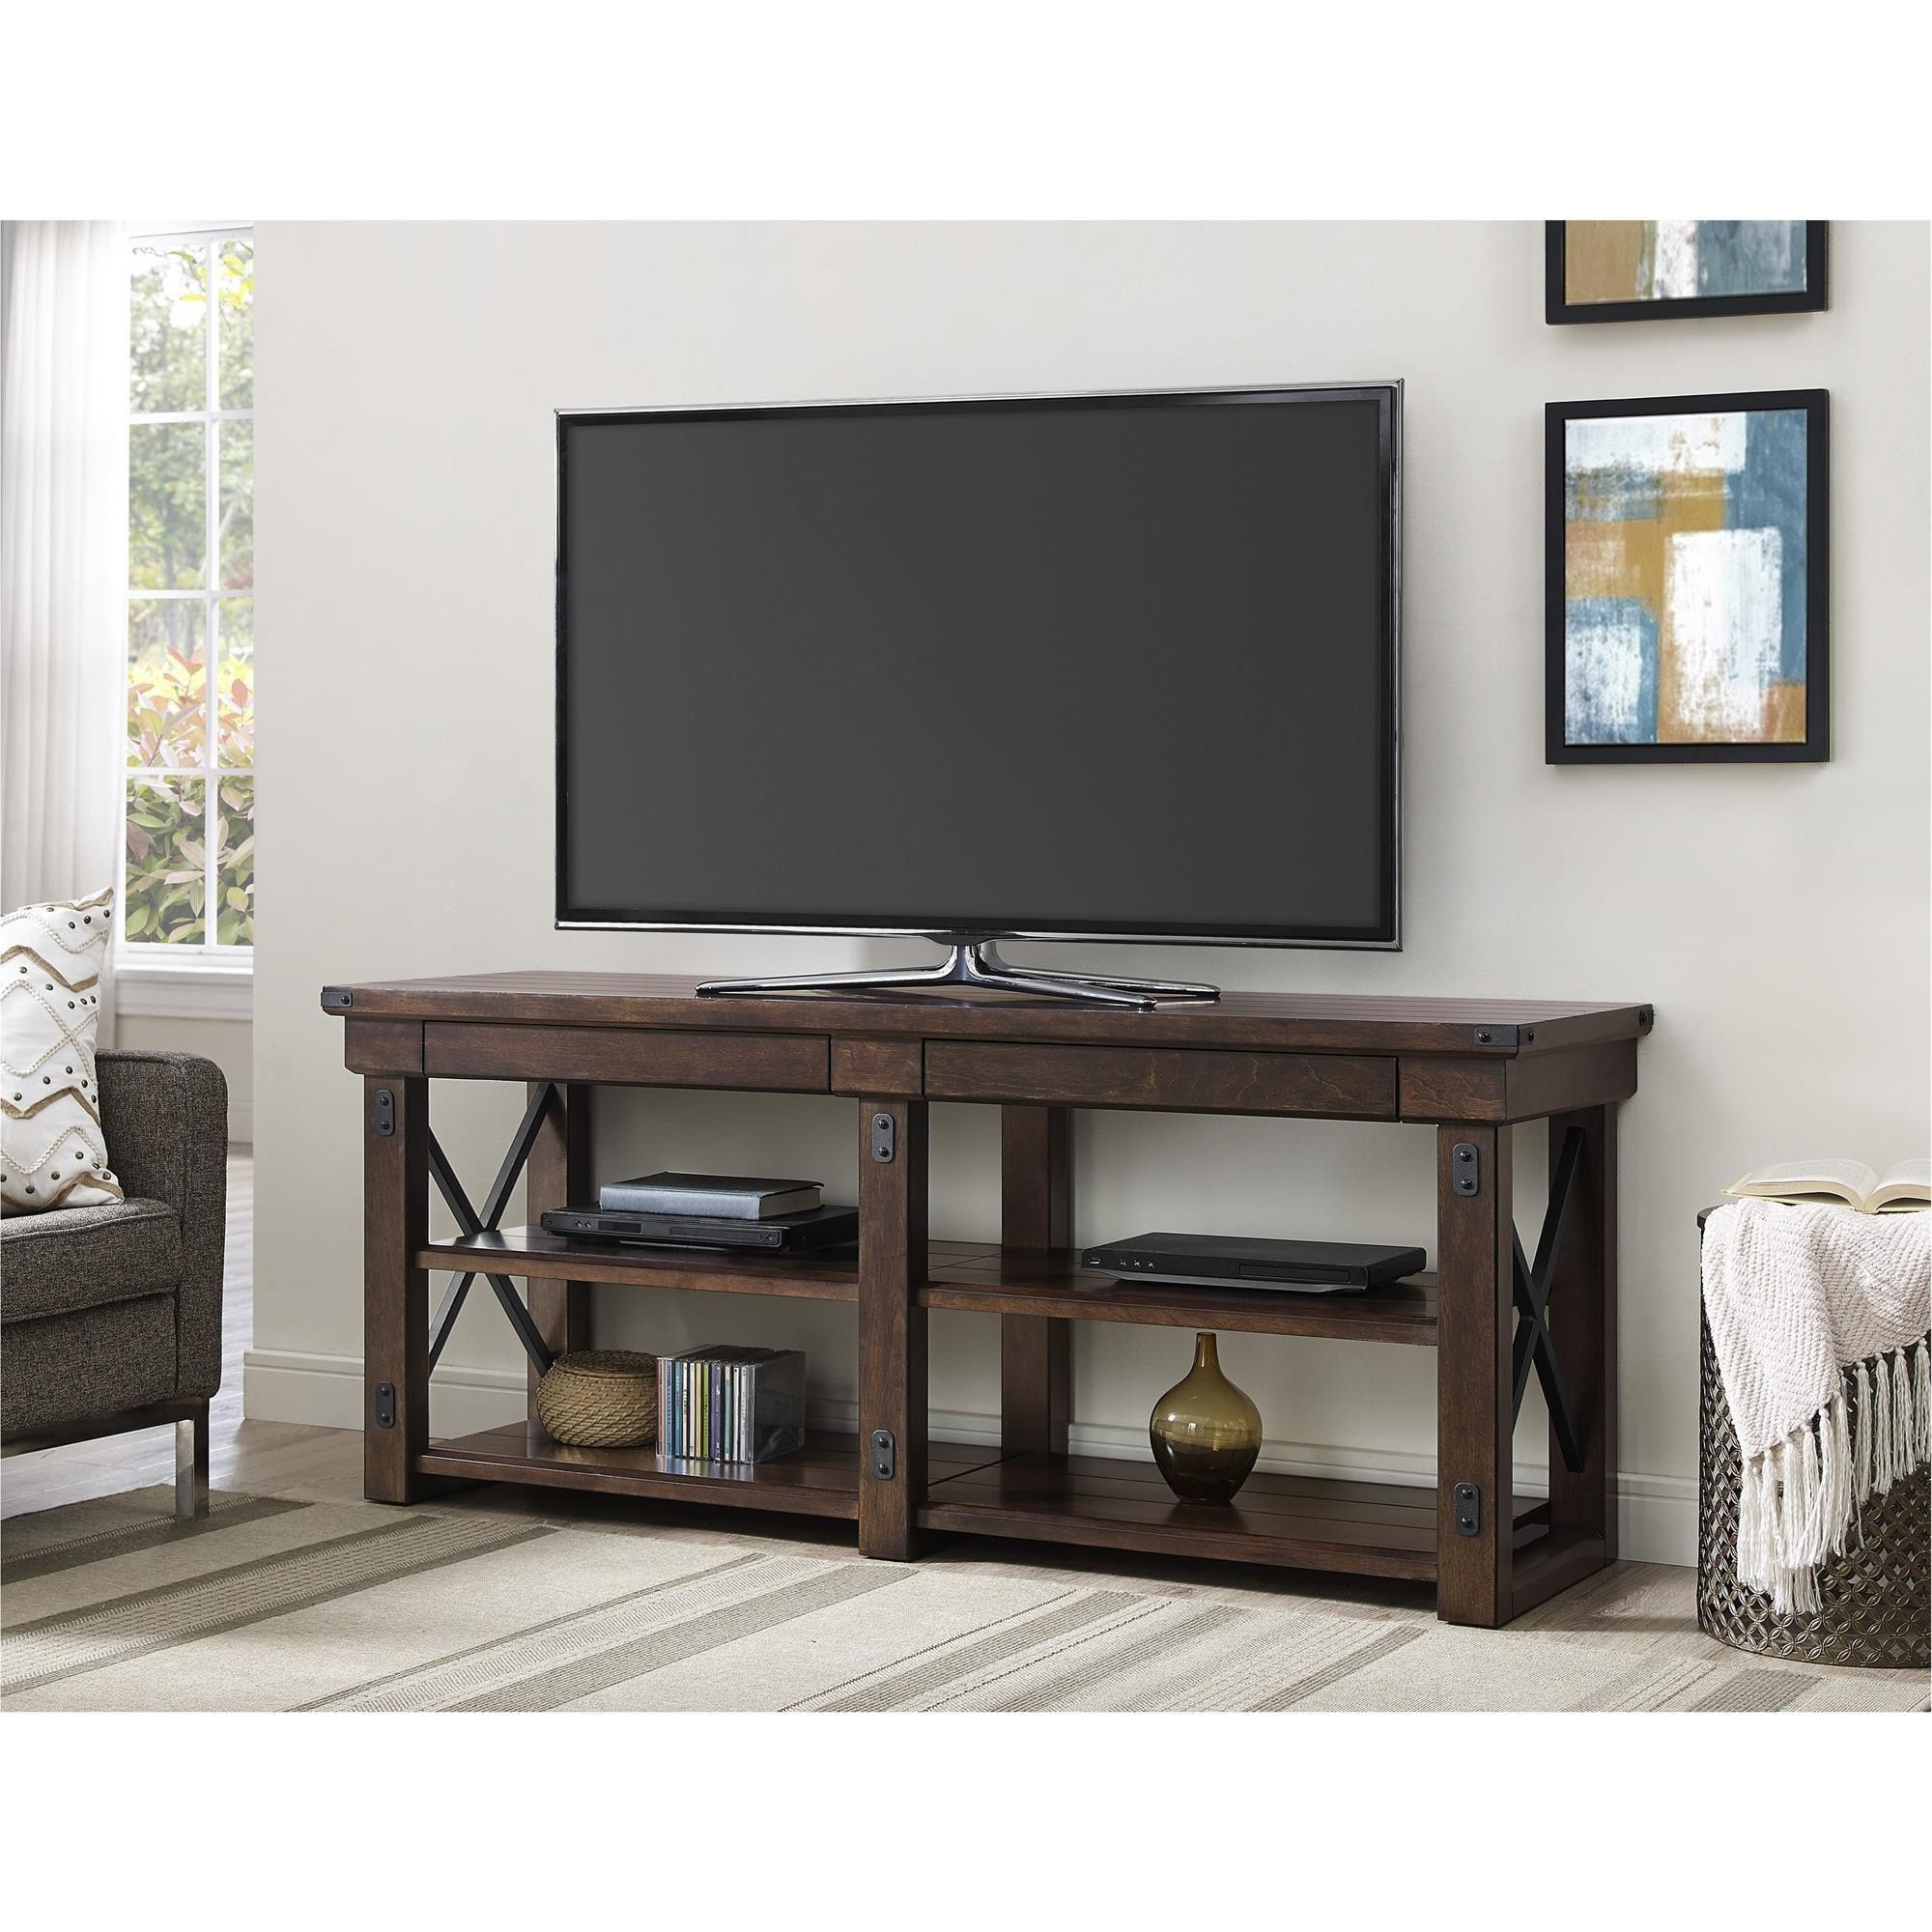 Ameriwood Home Wildwood Mahogany Veneer 65 Inch Tv Stand (65 Inch Tv Intended For Oxford 60 Inch Tv Stands (View 3 of 20)